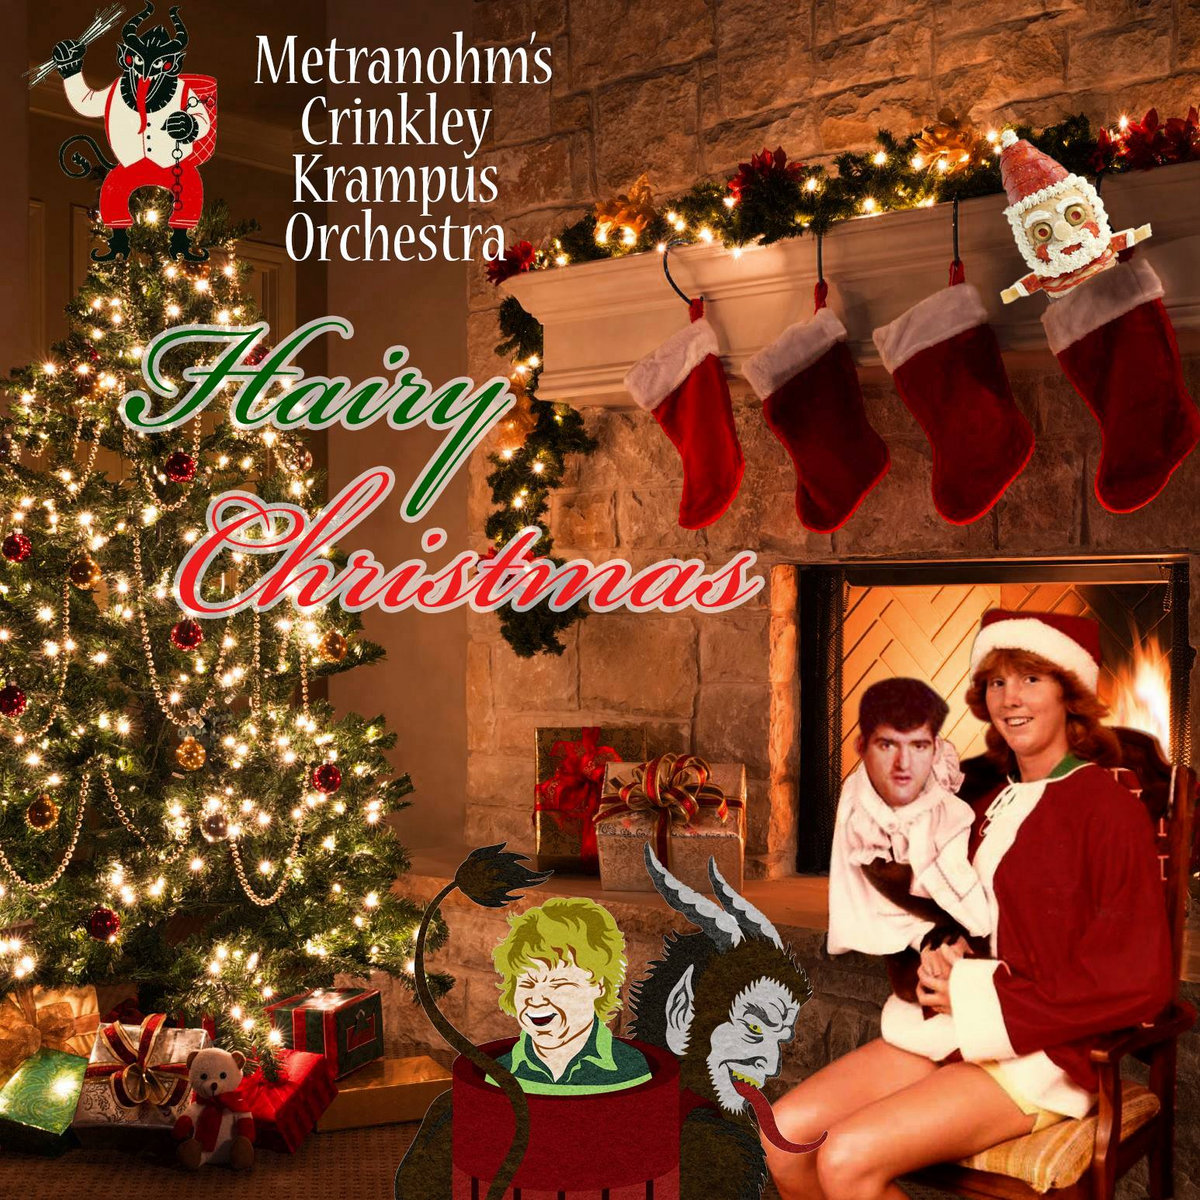 Hairy Christmas | Metranohm\'s Crinkley Krampus Orchestra